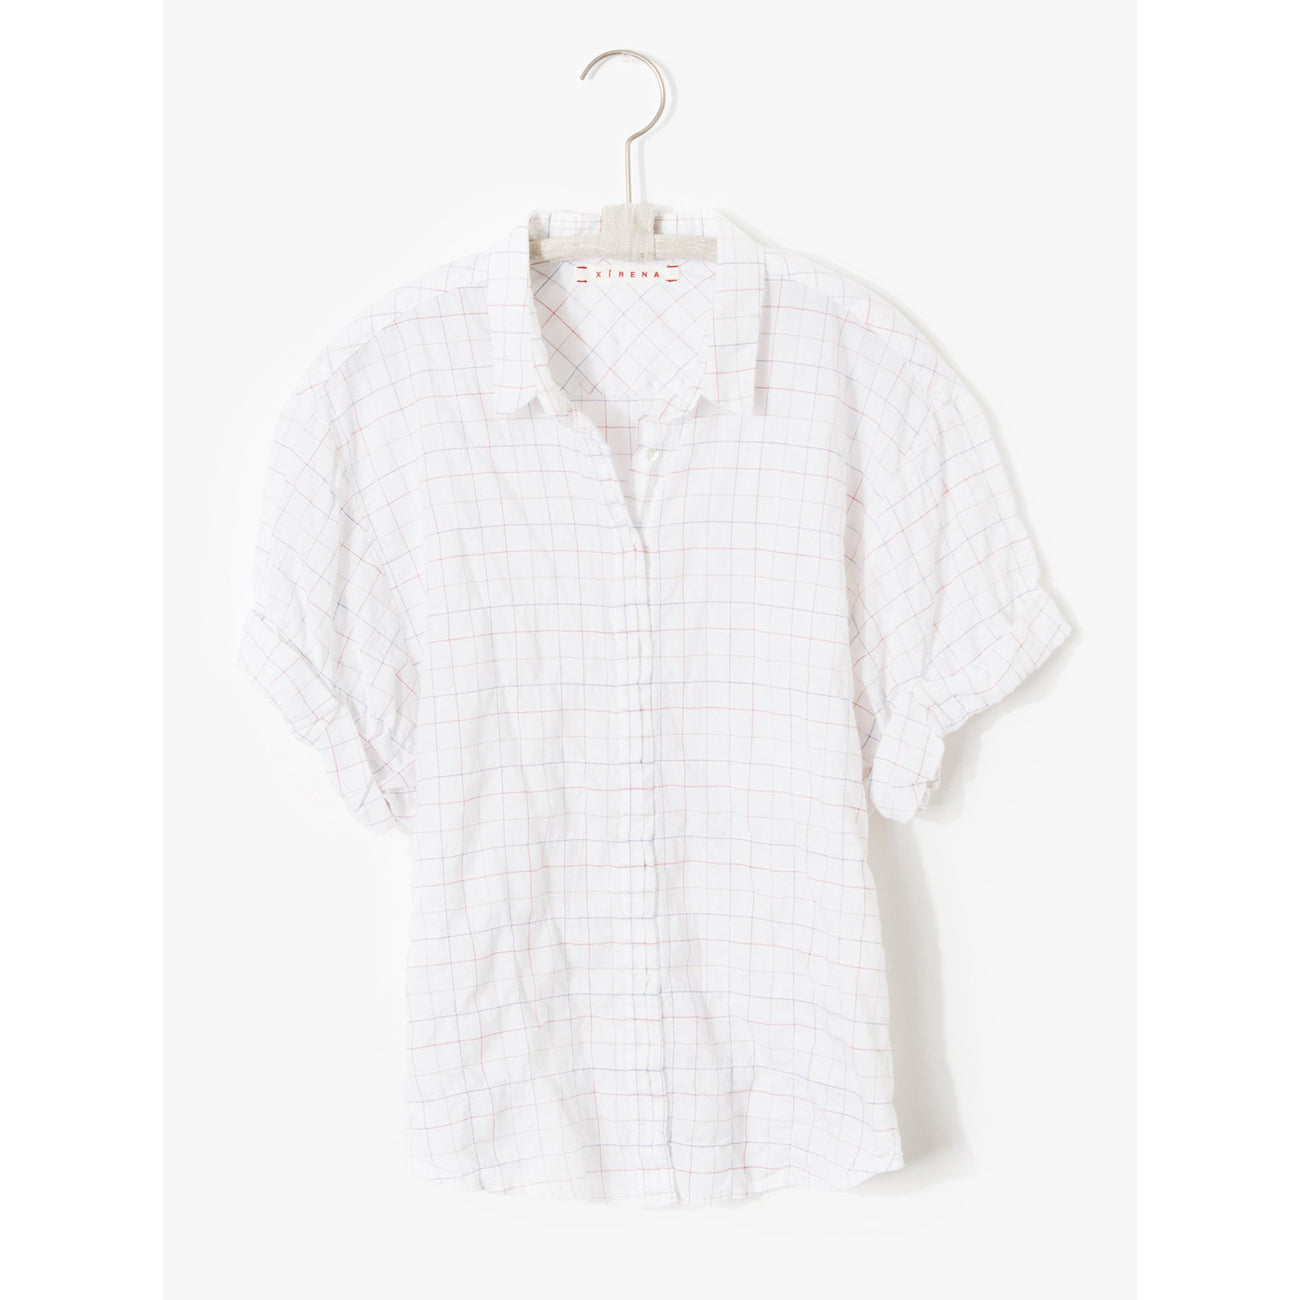 Xirena Chance Shirt in White Sail